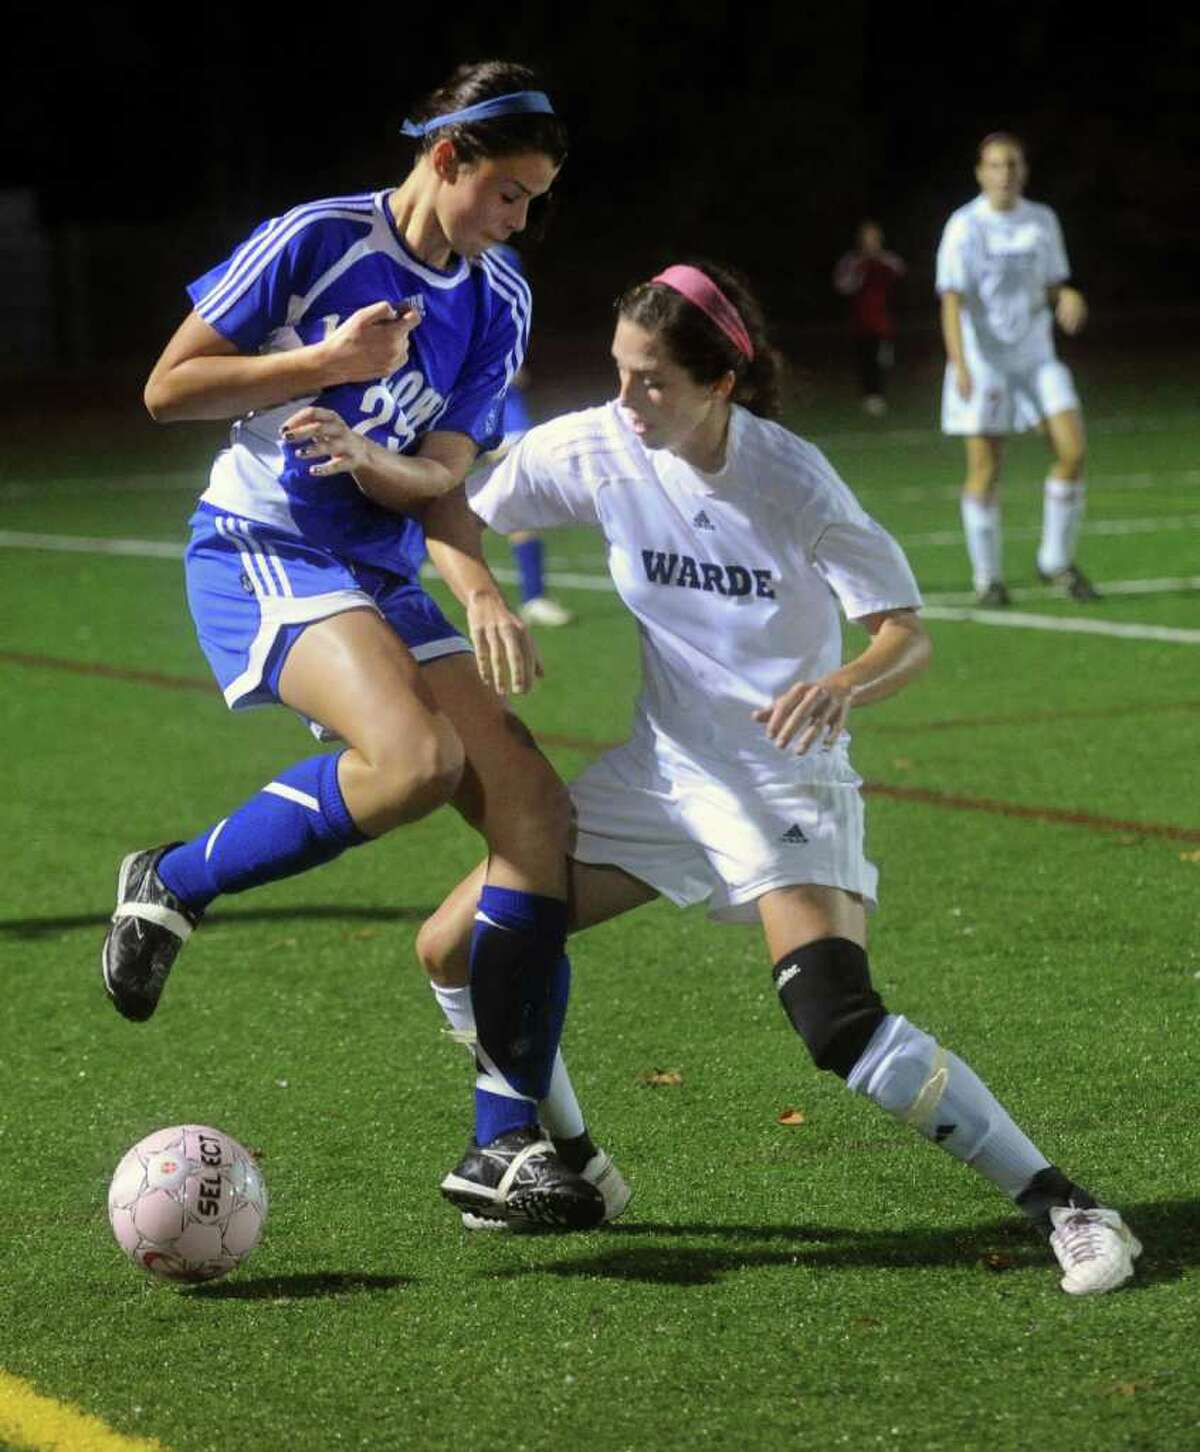 Warde's Keegan Thimons, right, and Ludlowe's Libby McNamara, left, compete for control of the ball during Tuesday's game at Fairfield Warde's field on October 26, 2010.